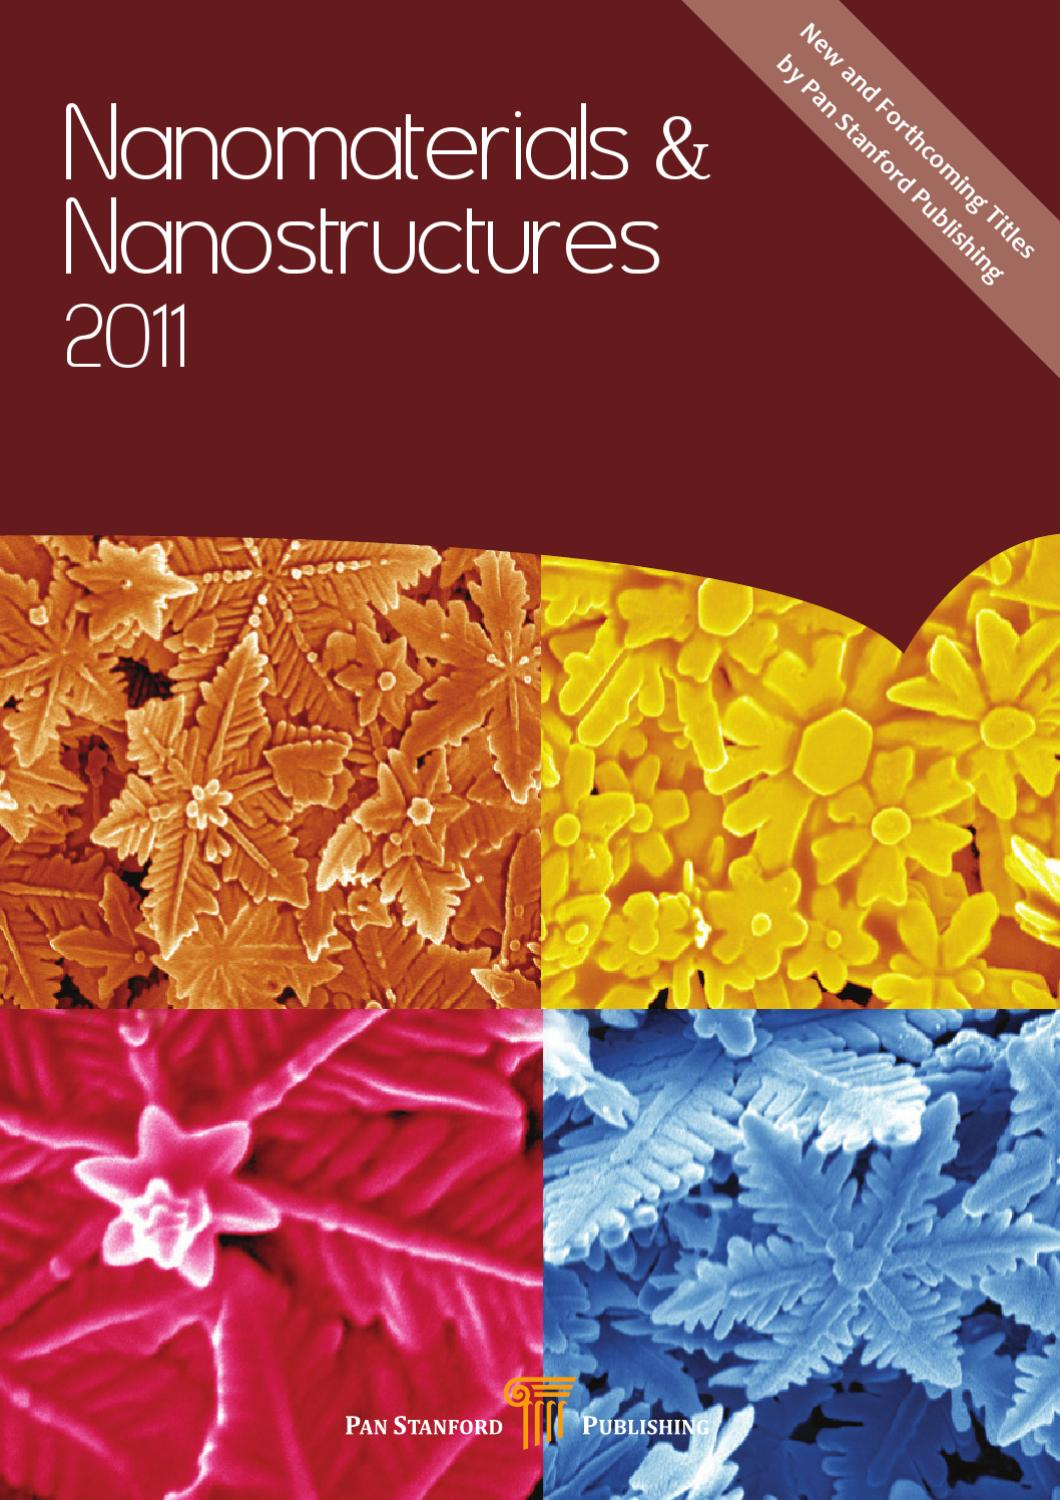 Nanomaterials & Nanostructures 2011 by Pan Stanford Publishing - issuu